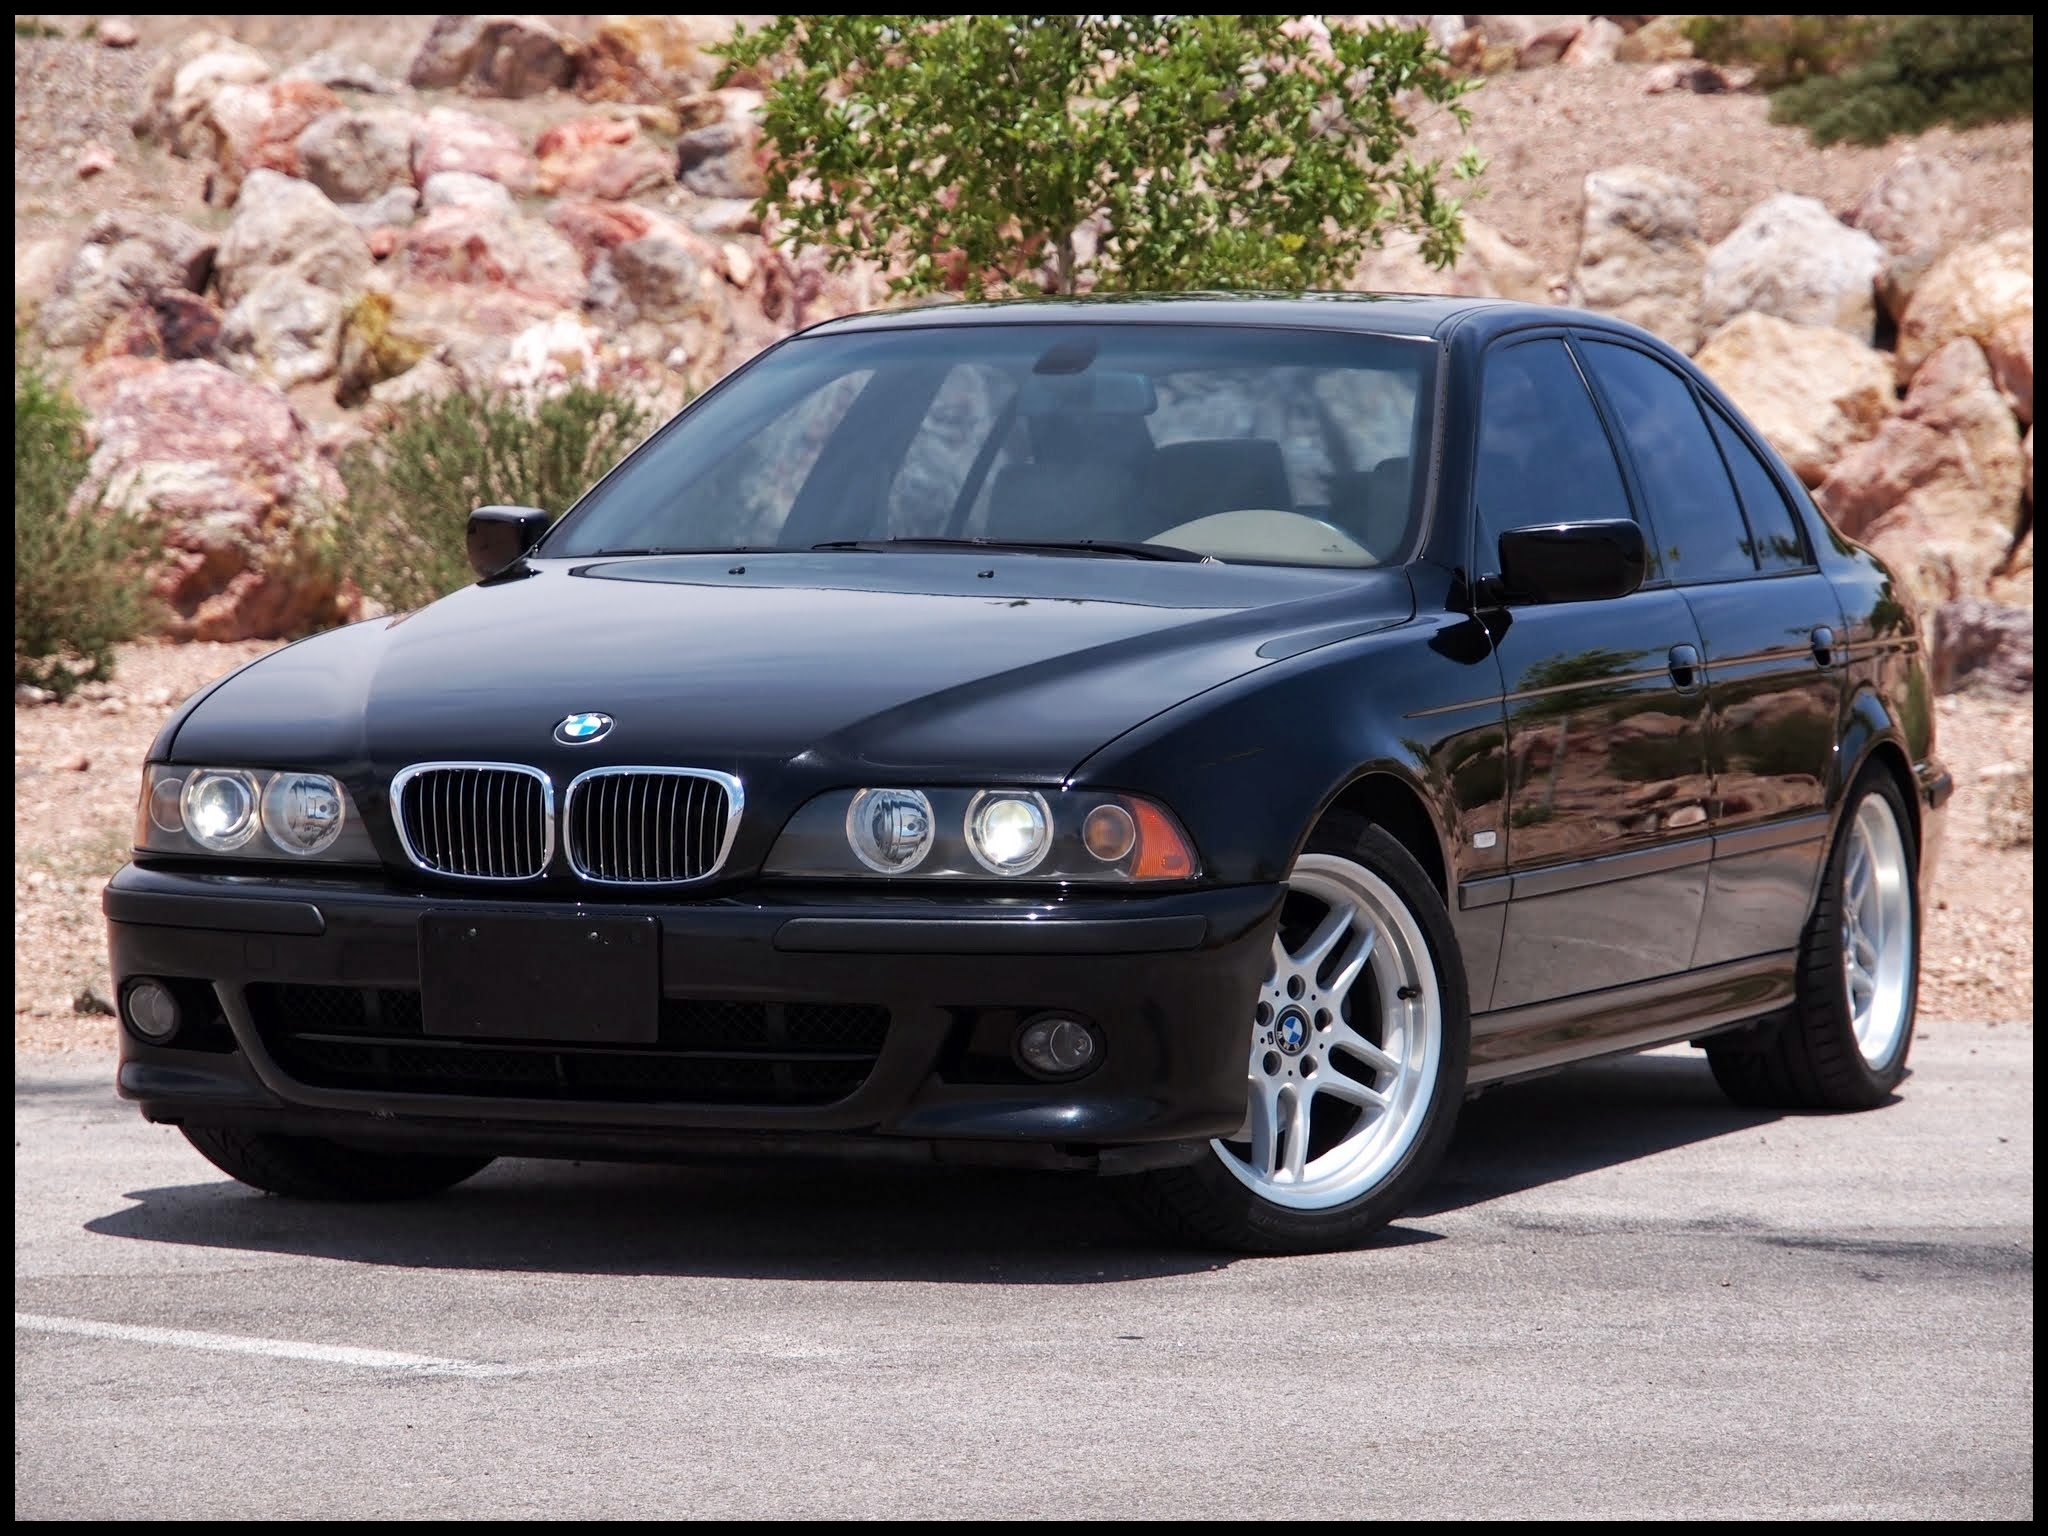 2003 BMW 540i SPORTS PACKAGE Test Drive & Walk Around by Viva Las Vegas Autos